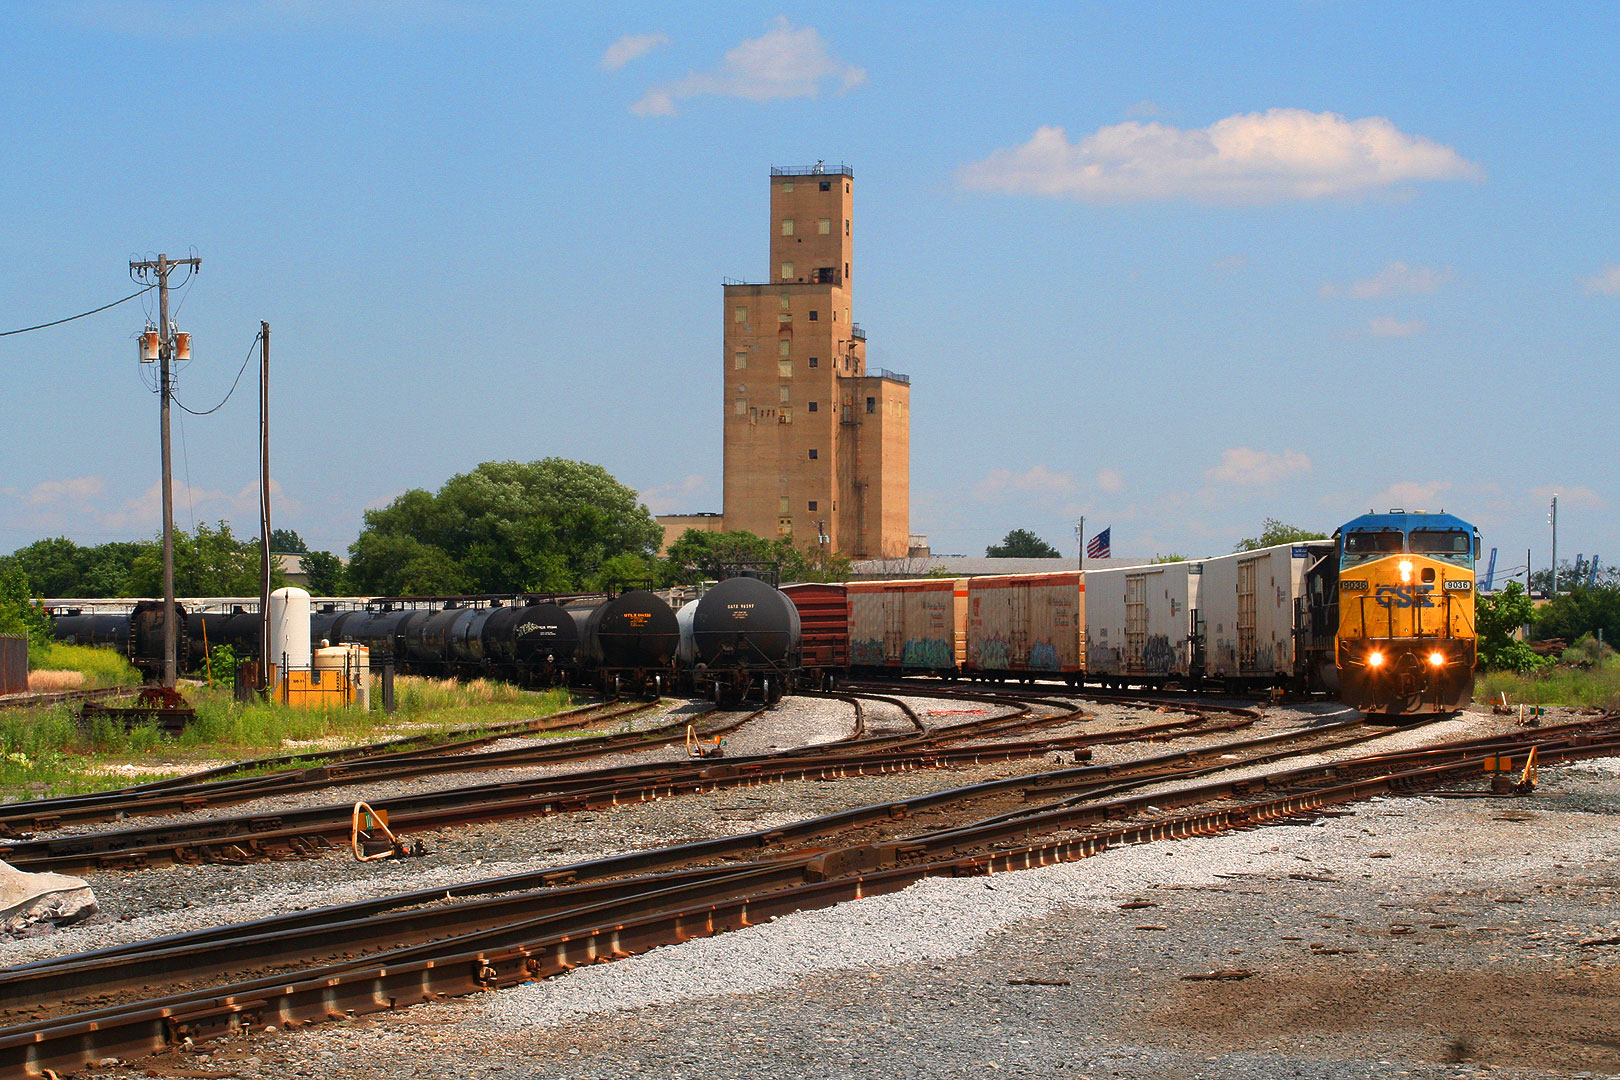 Having have negotiated the whole of the Locust Point loop, the train re-enters the actual yard area.